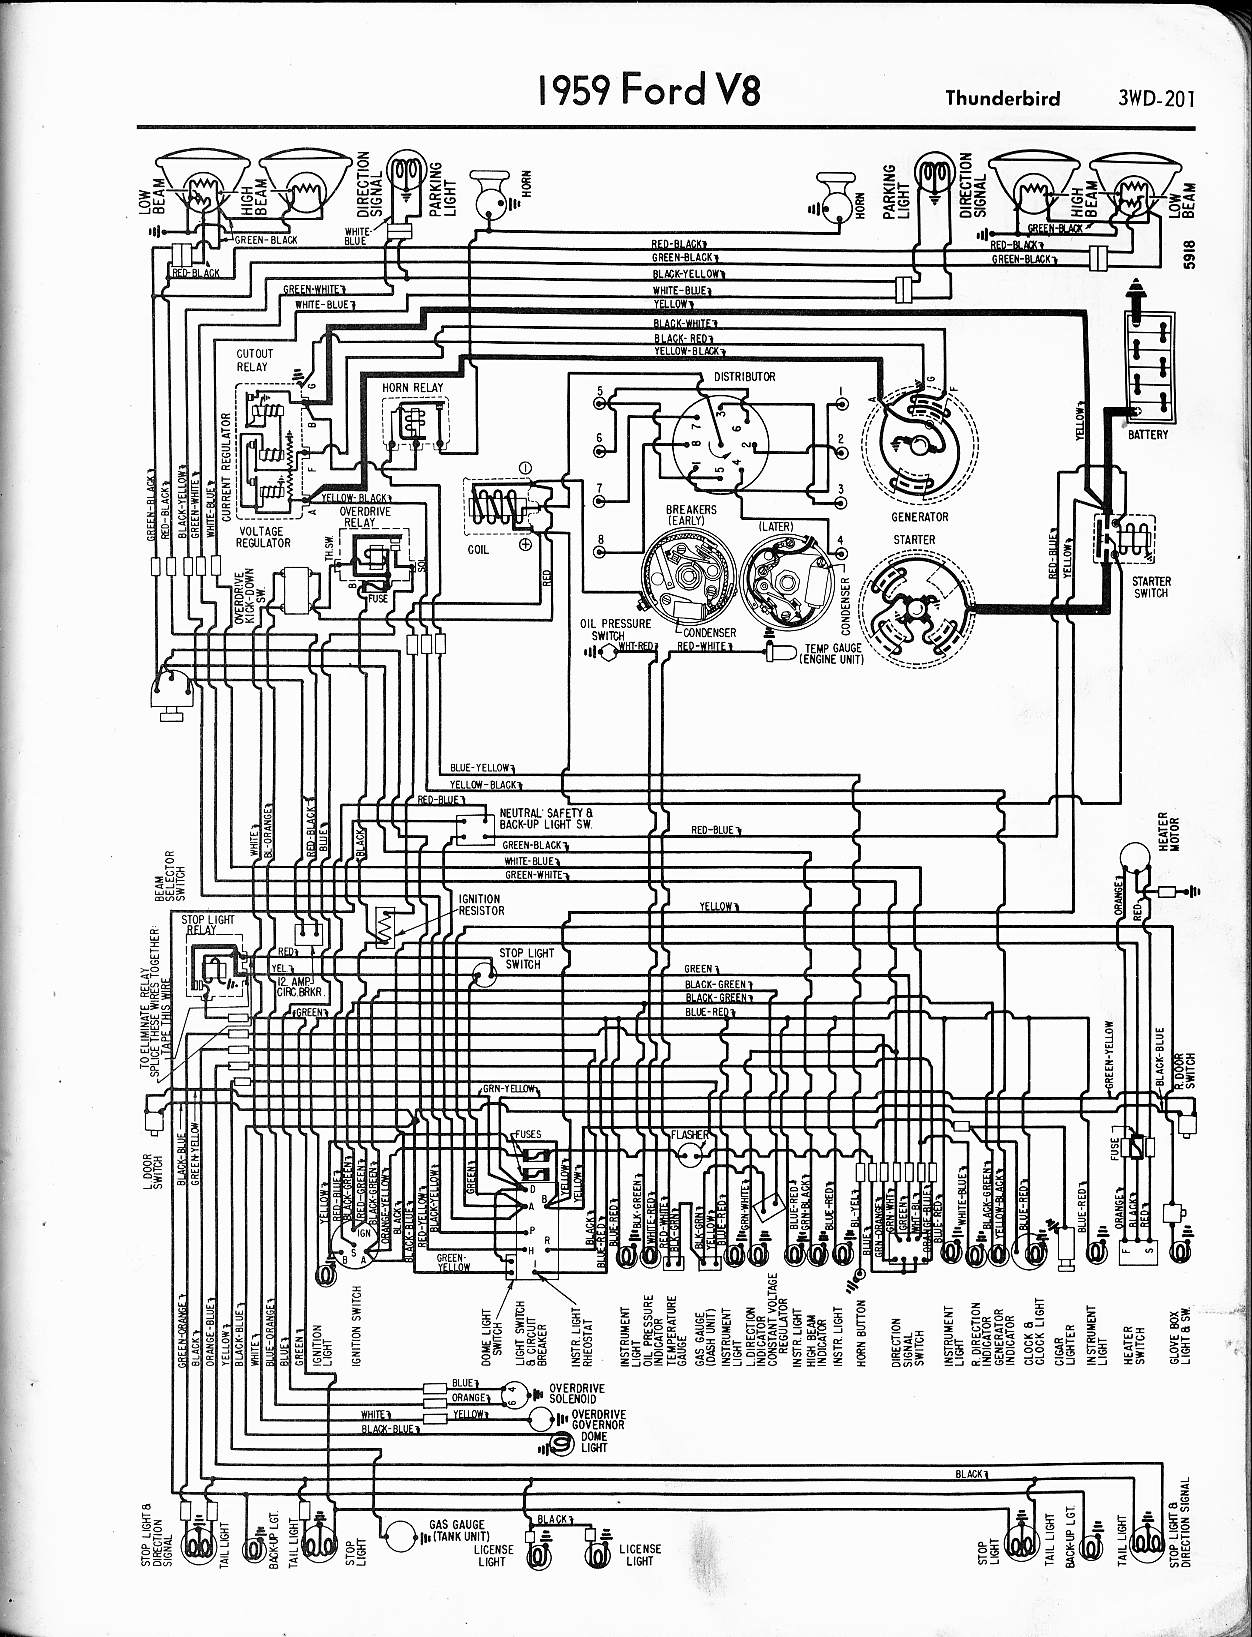 57 65 ford wiring diagrams 1978 Ford Truck Wiring Diagram 1959 thunderbird